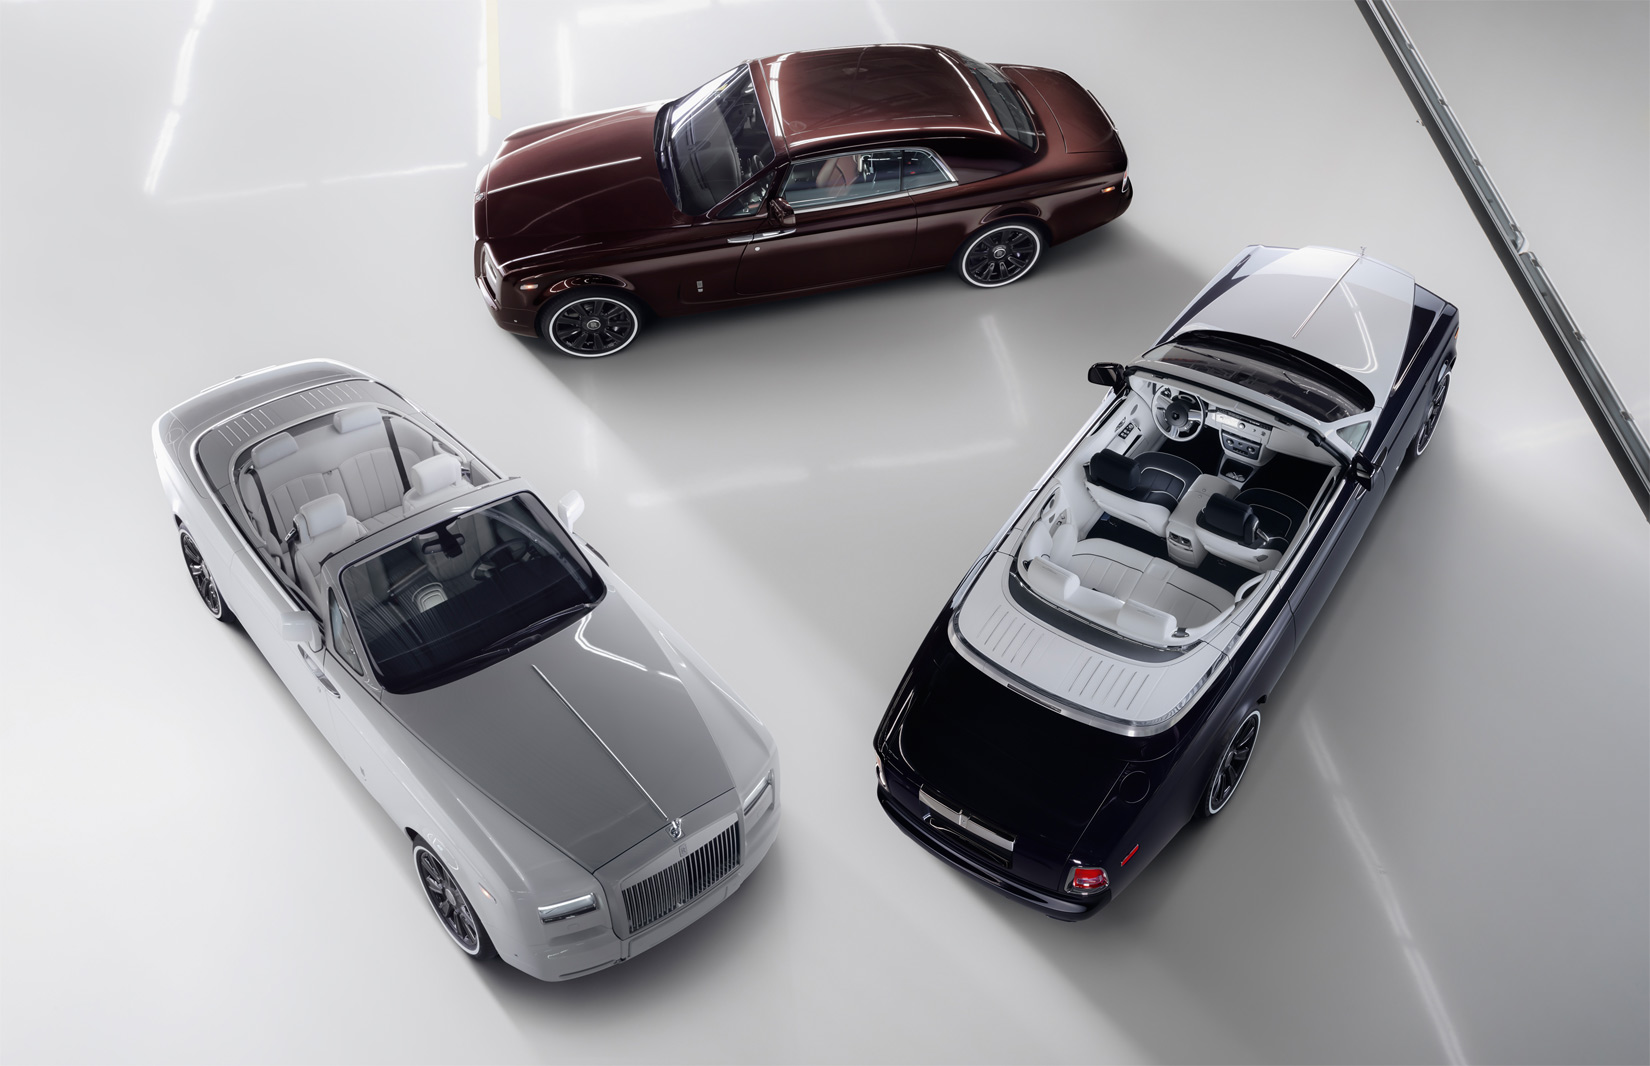 Rolls-Royce Looks To Reach The Pinnacle With The Phantom Zenith Collection